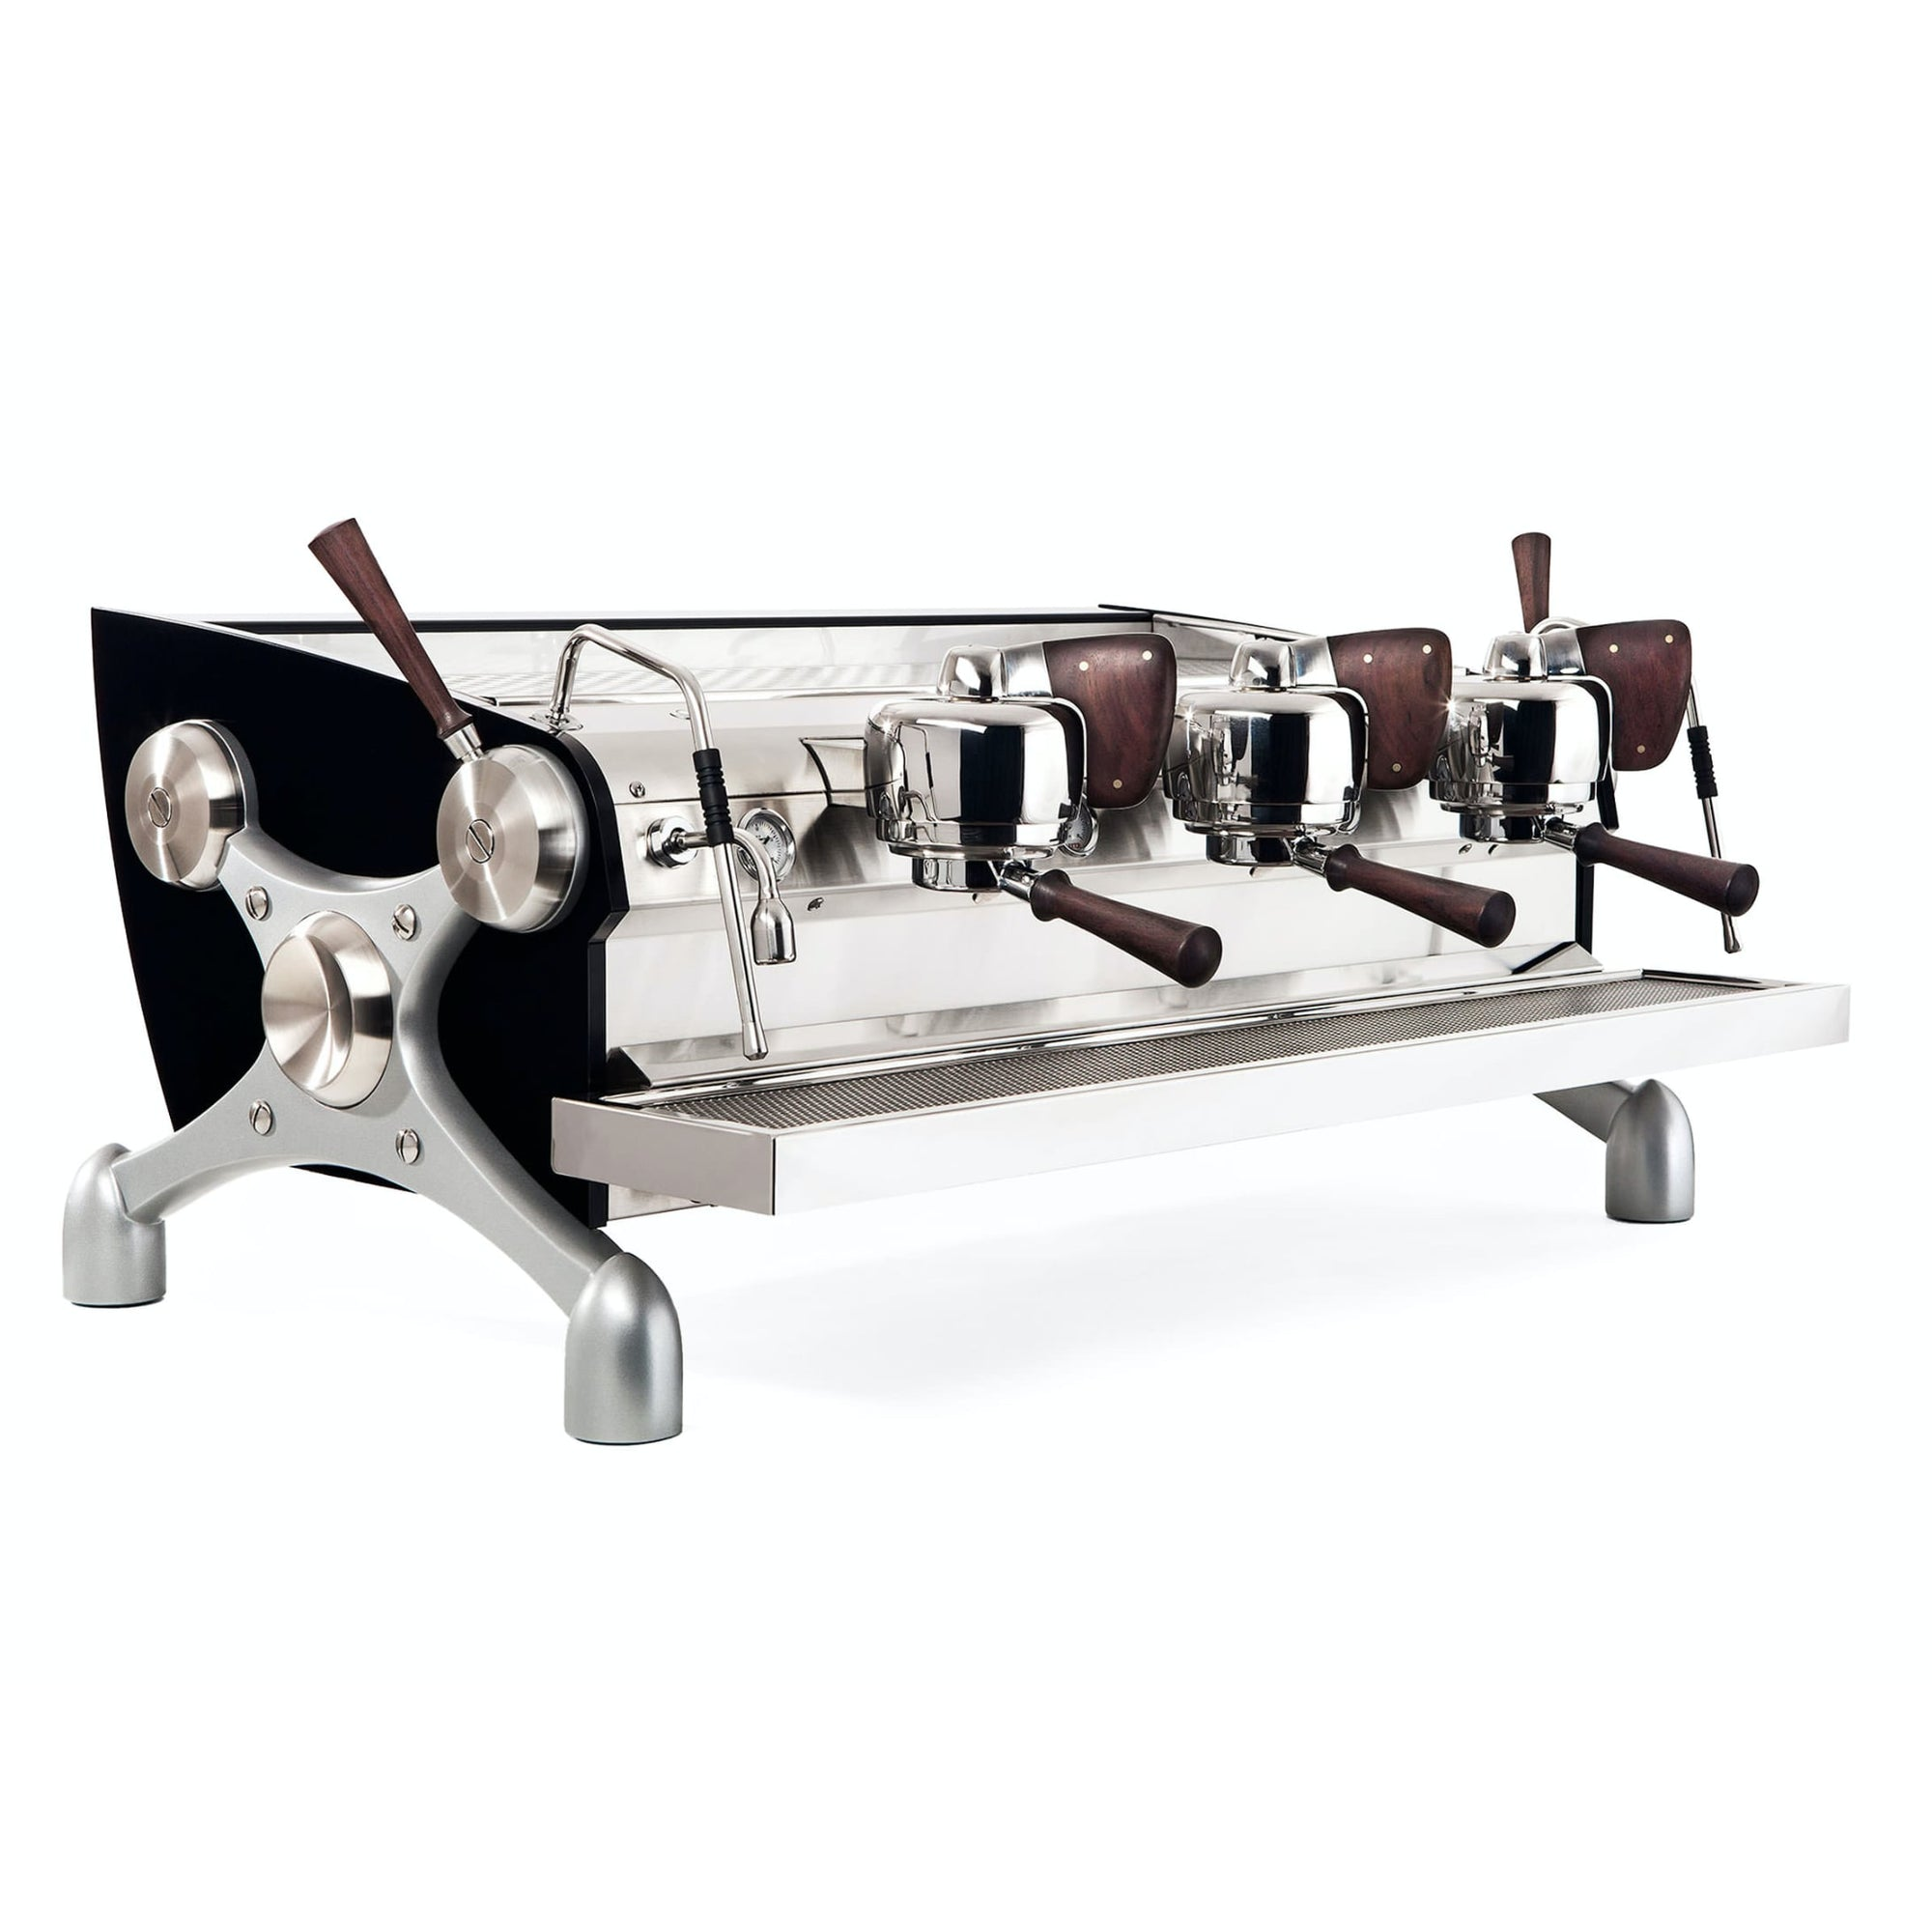 Slayer V3 Espresso Coffee Machine